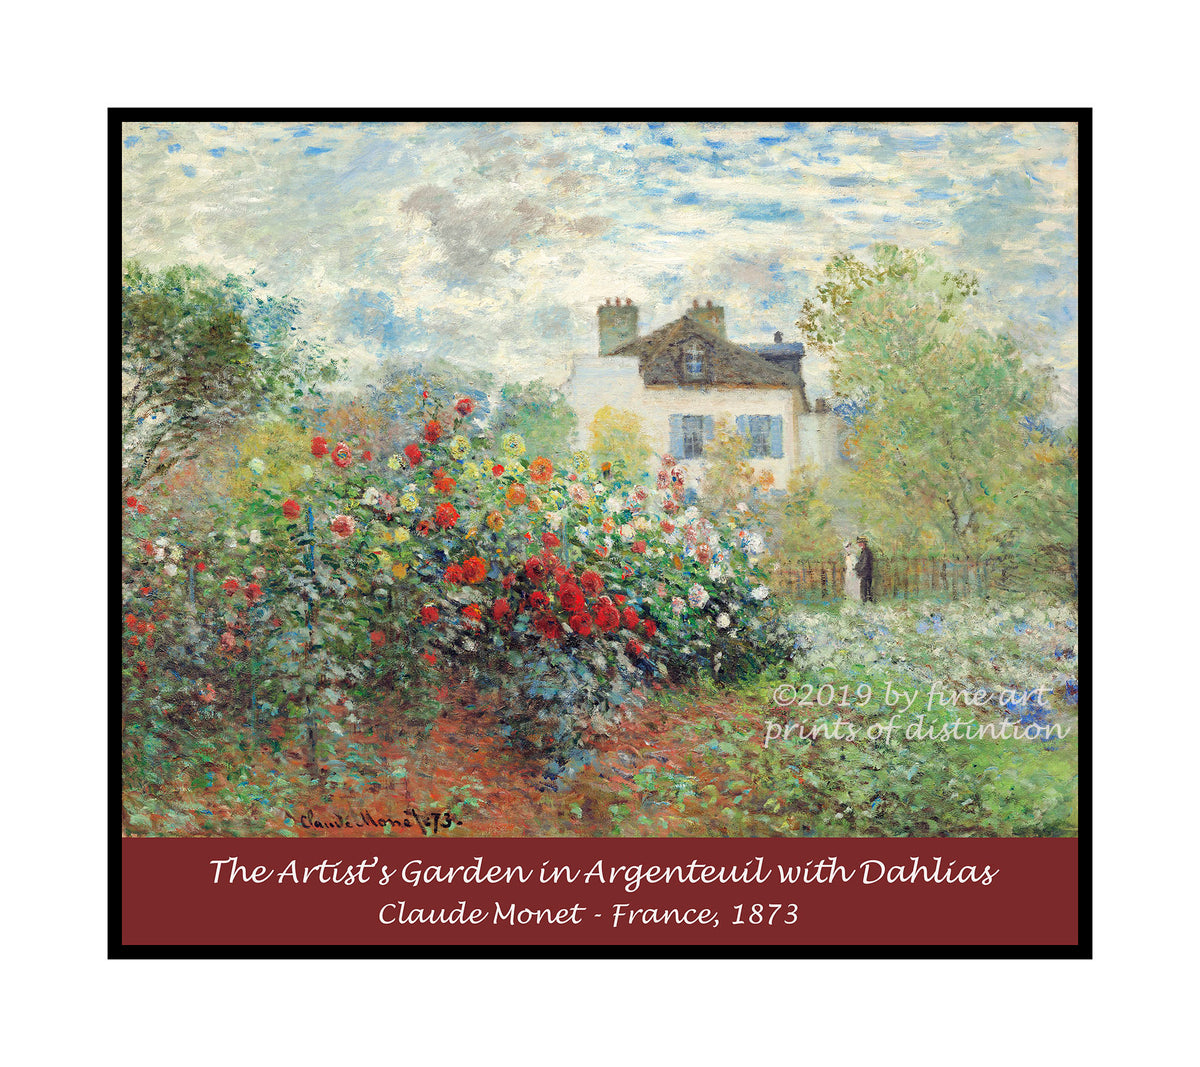 A premium poster of The Artist's Garden in Argenteuil (A Corner of the Garden with Dahlias) painted by Claude Monet in 1873